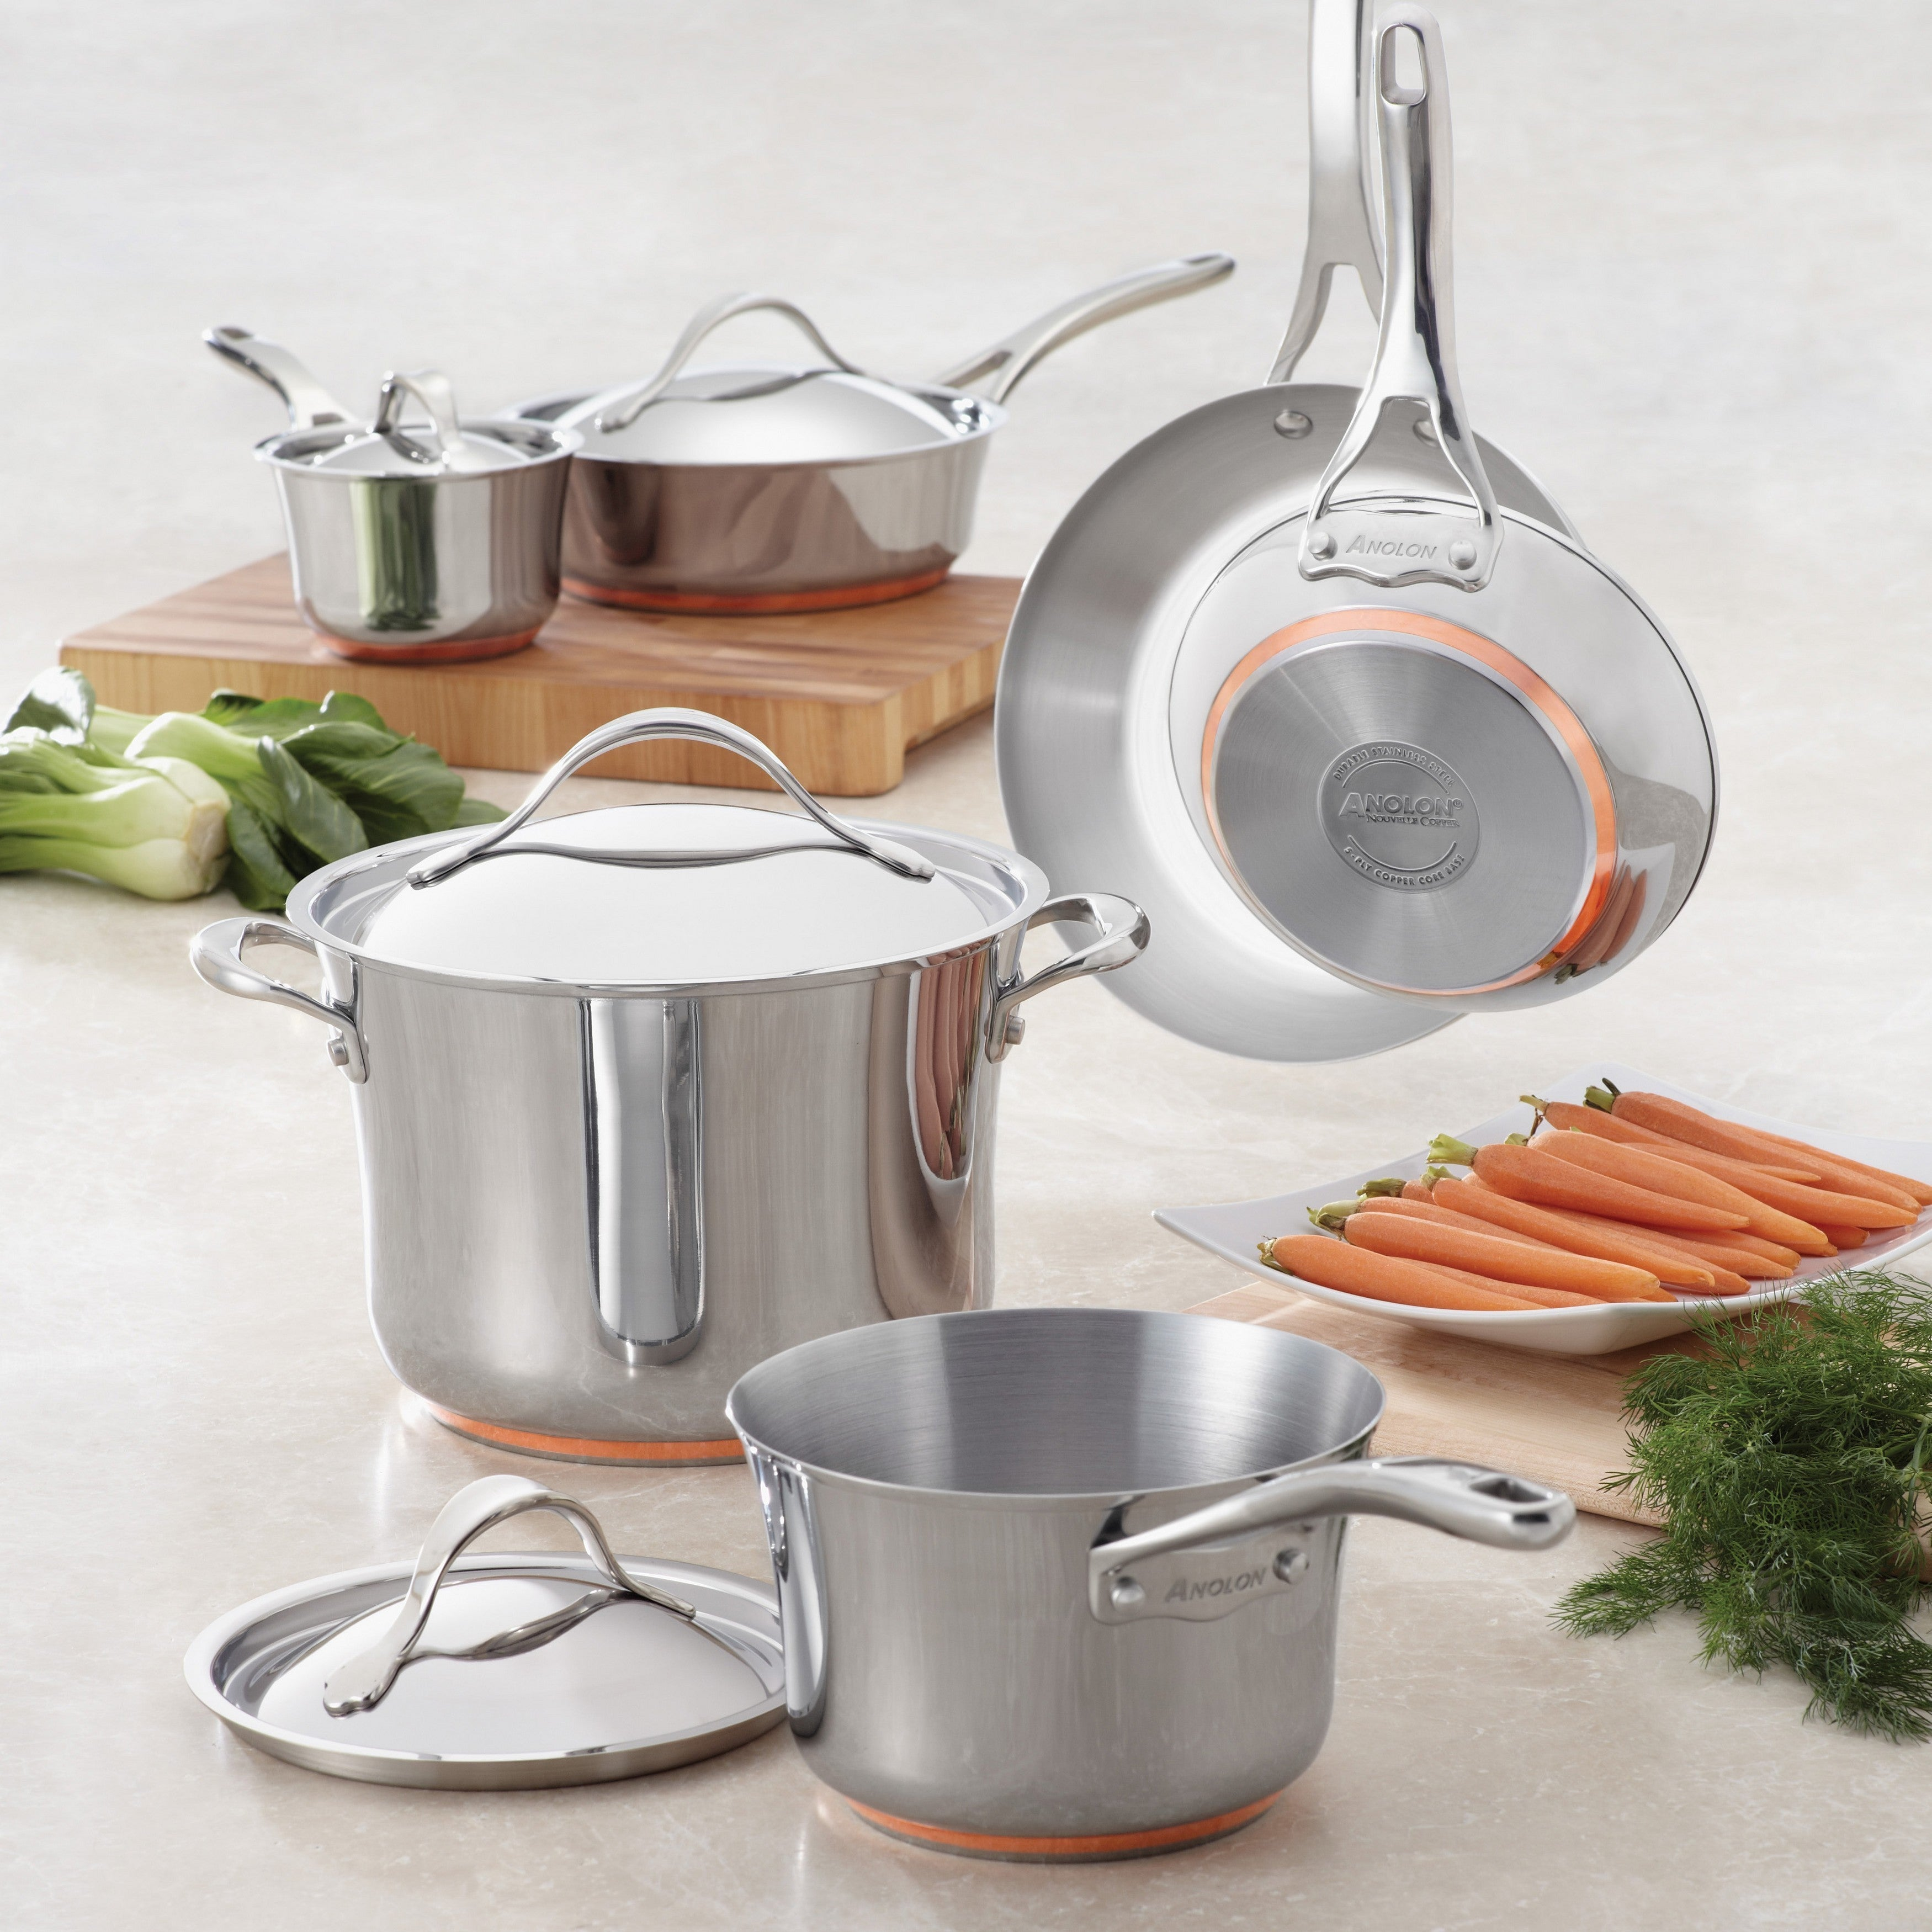 Anolon Nouvelle Copper Stainless Steel 3 1 2 Quart Covered Saucepan Overstock 9206701